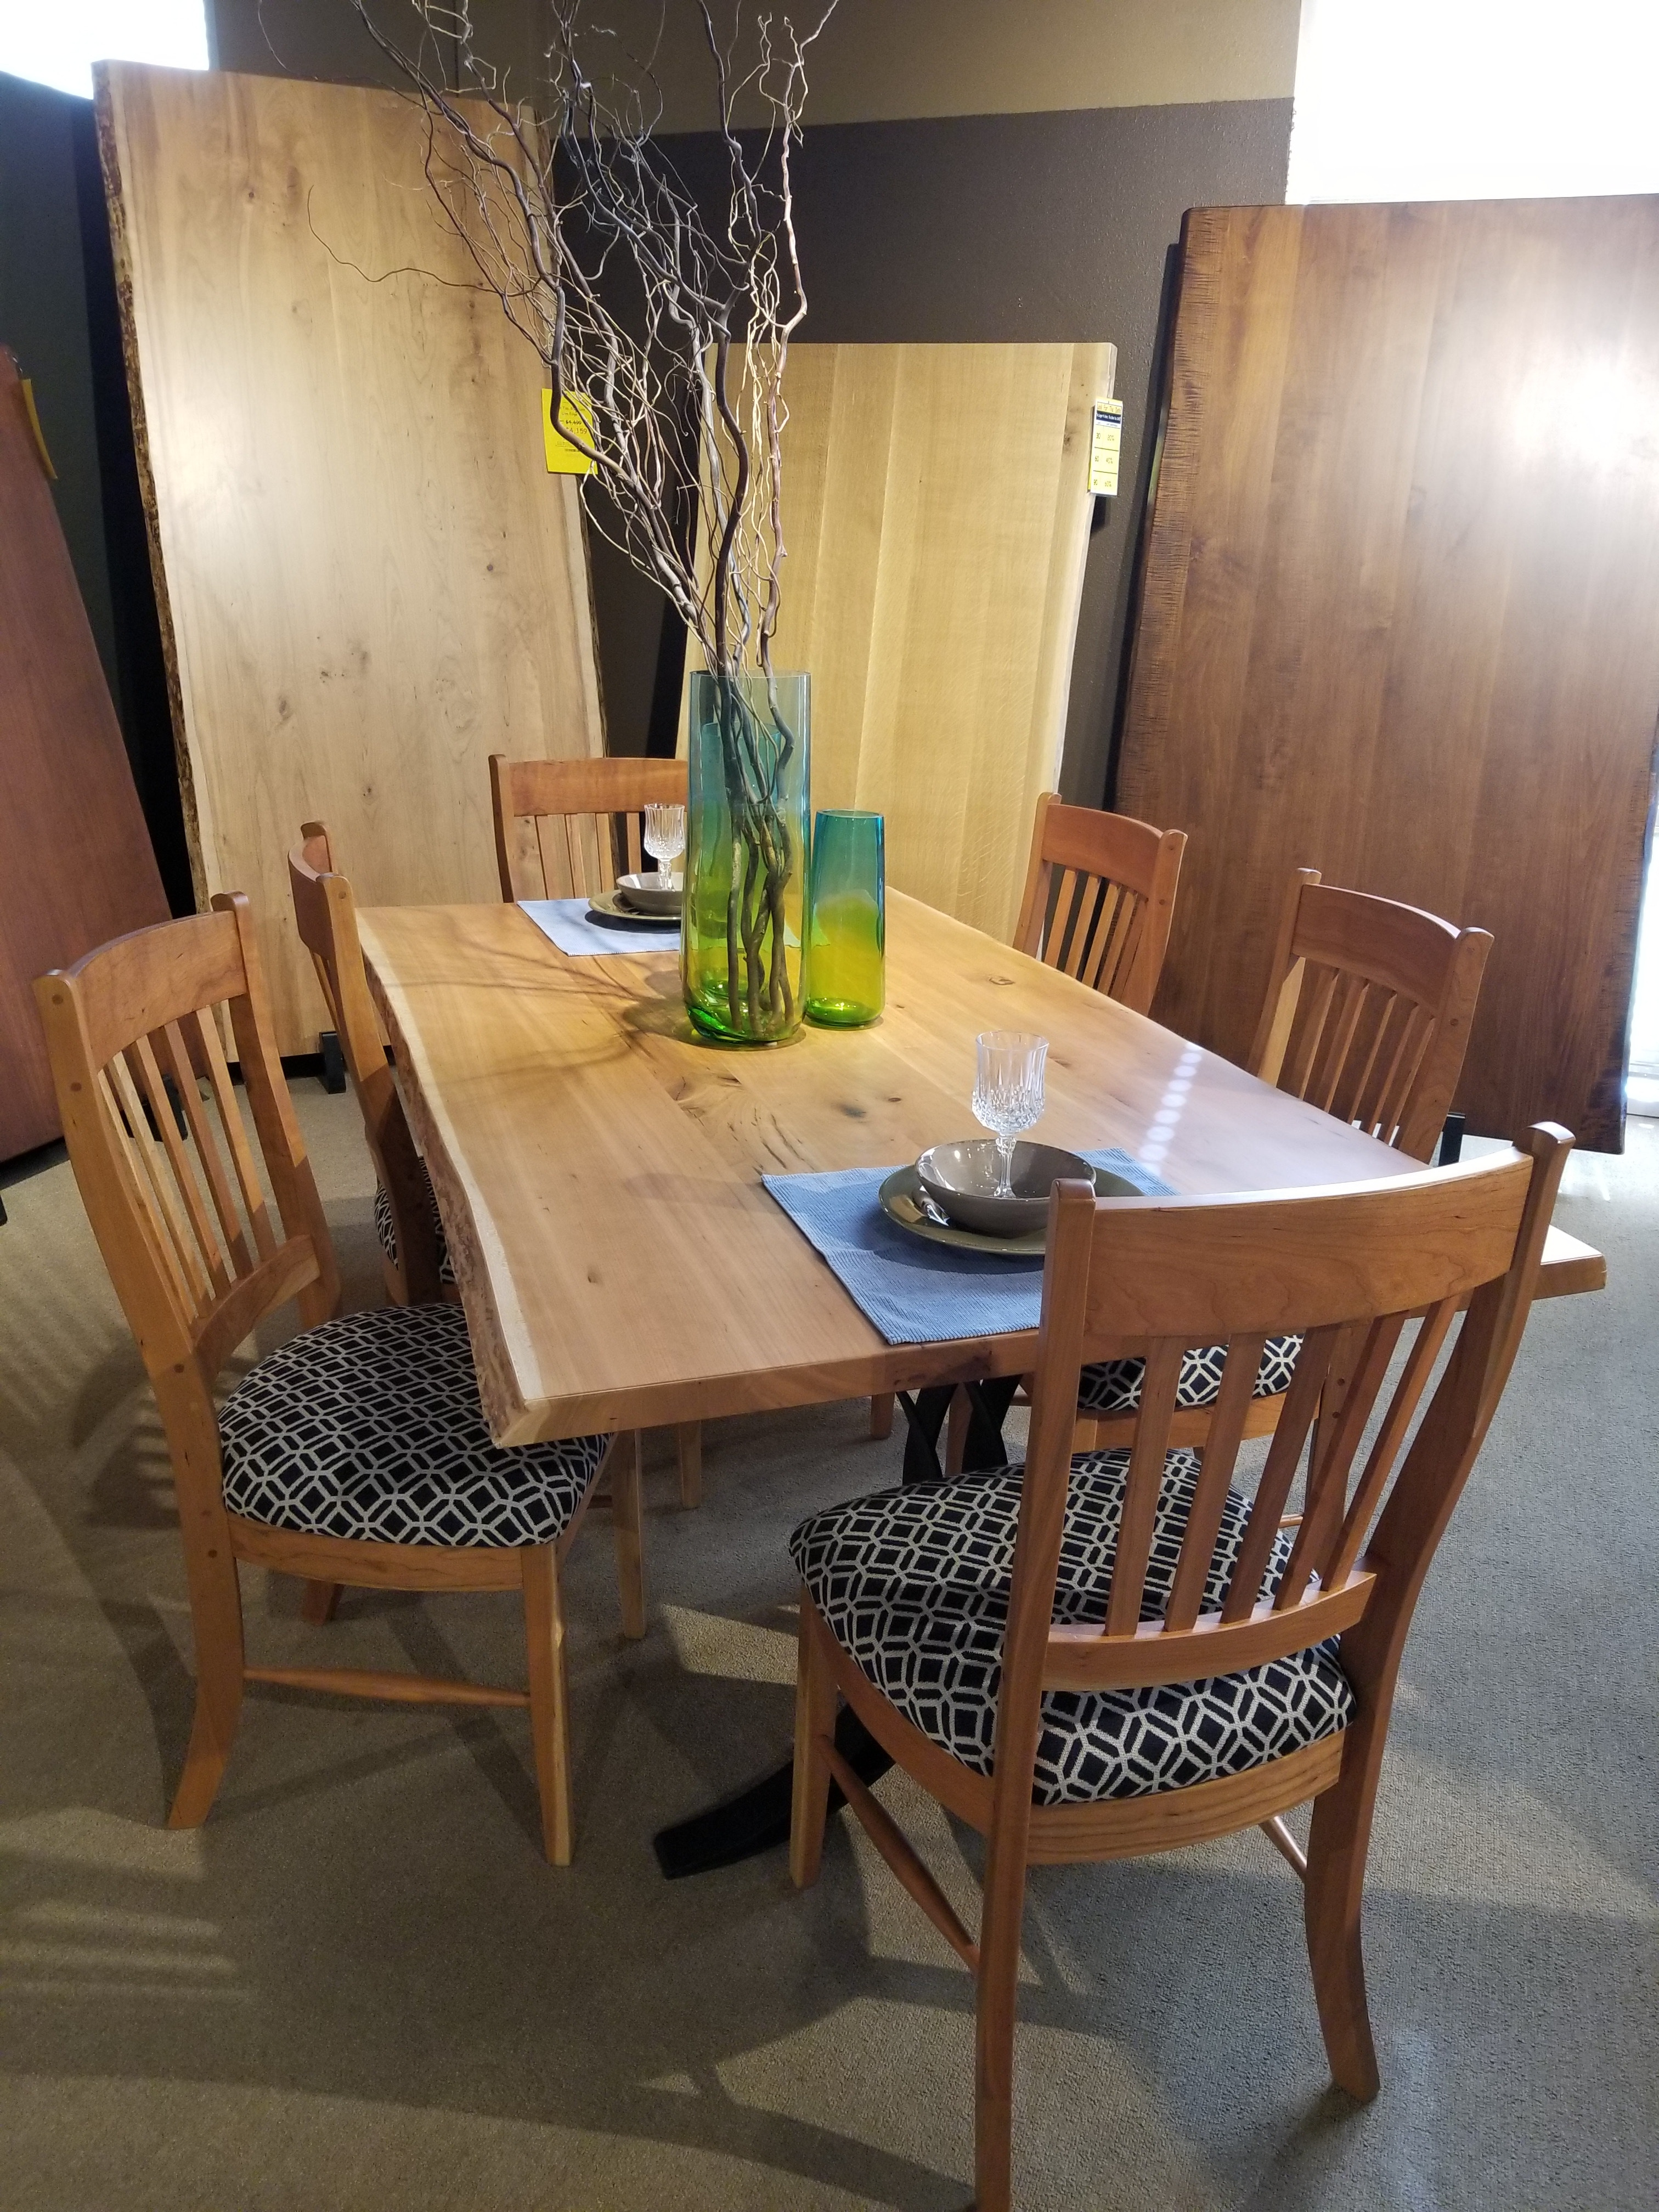 Charmant Clearance 7pc Live Edge Rustic Cherry Dining Set PKGRCLIVEEDGE